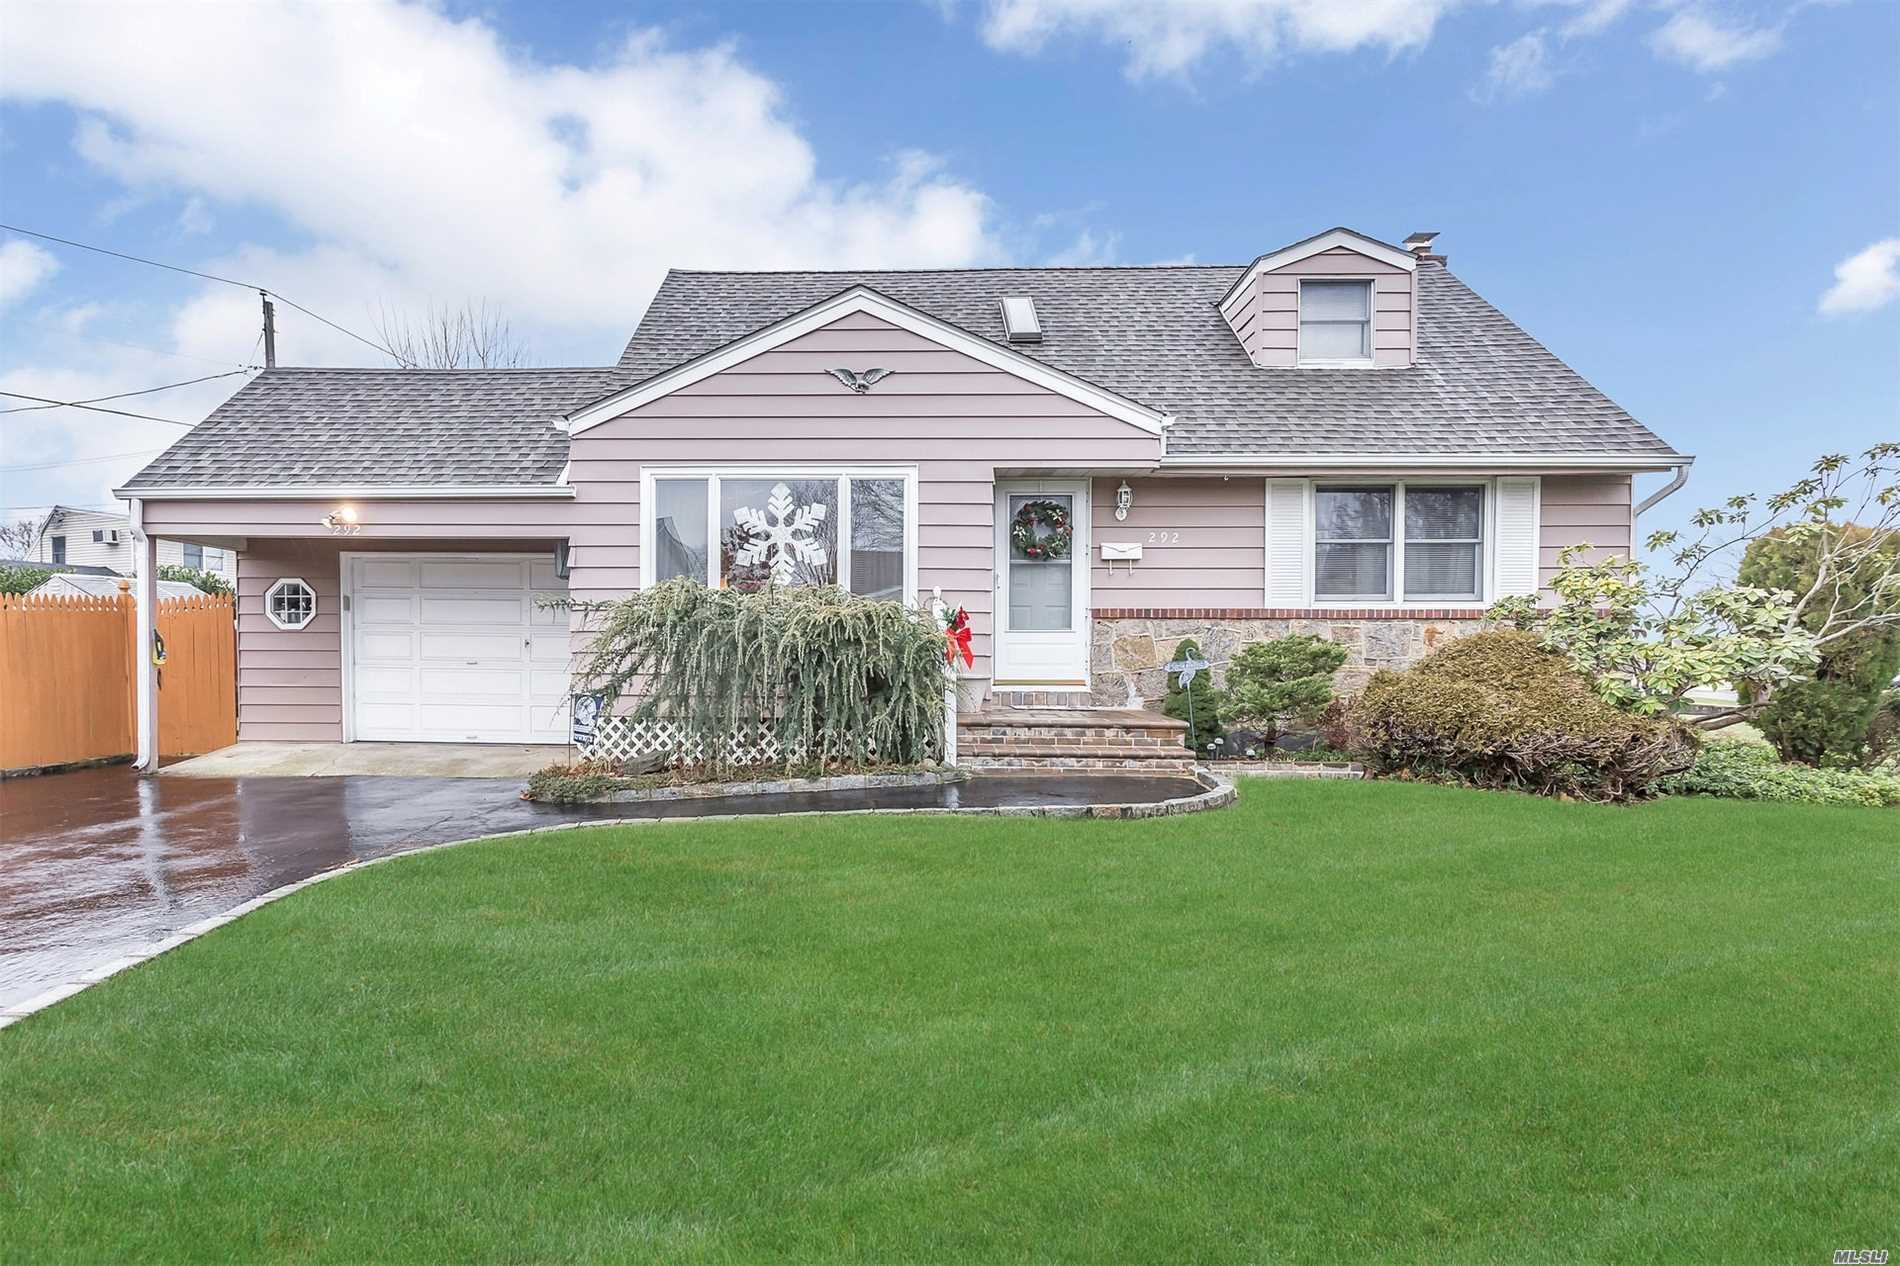 292 Cayuga Ave - East Meadow, New York